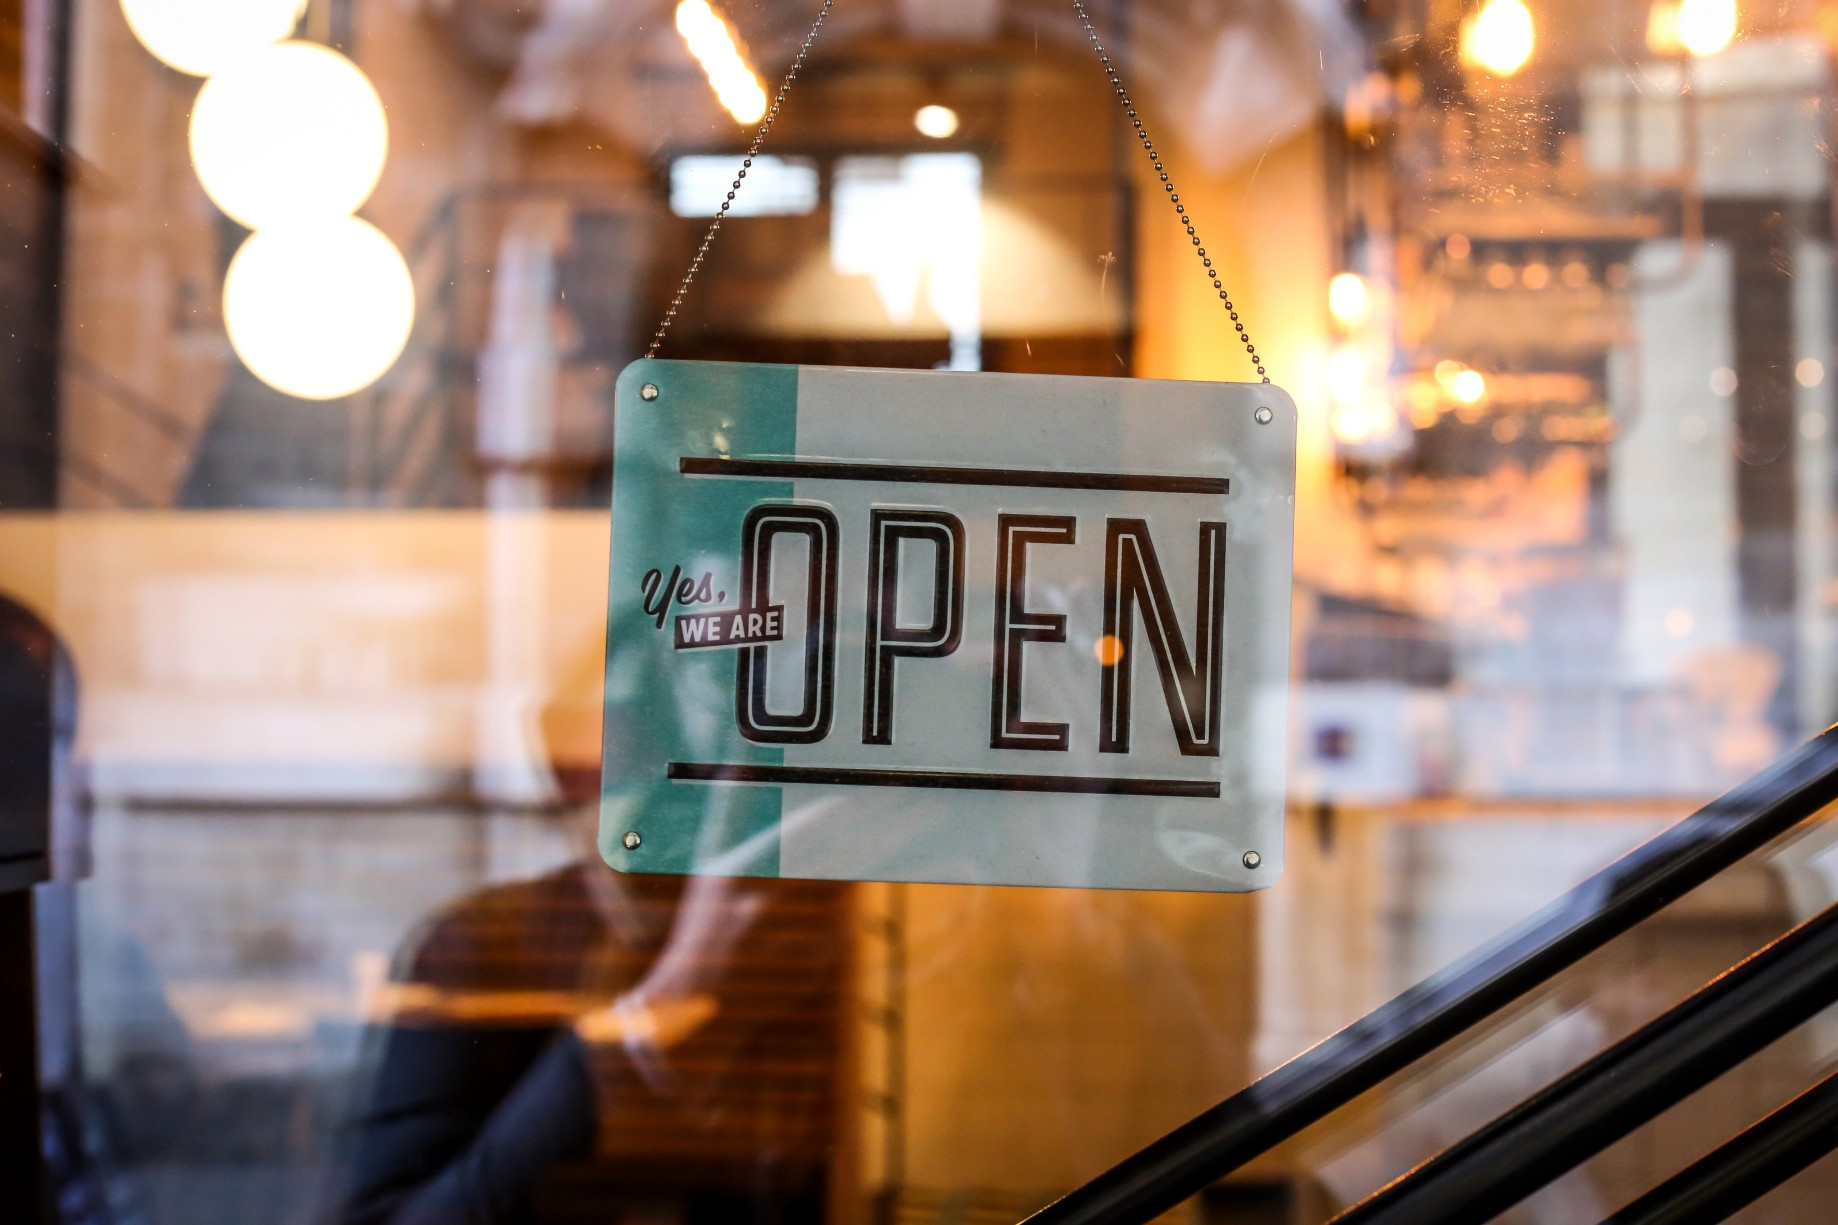 589f9b8bb3a7 Stores aren't going anywhere: what AI empowered customers really want